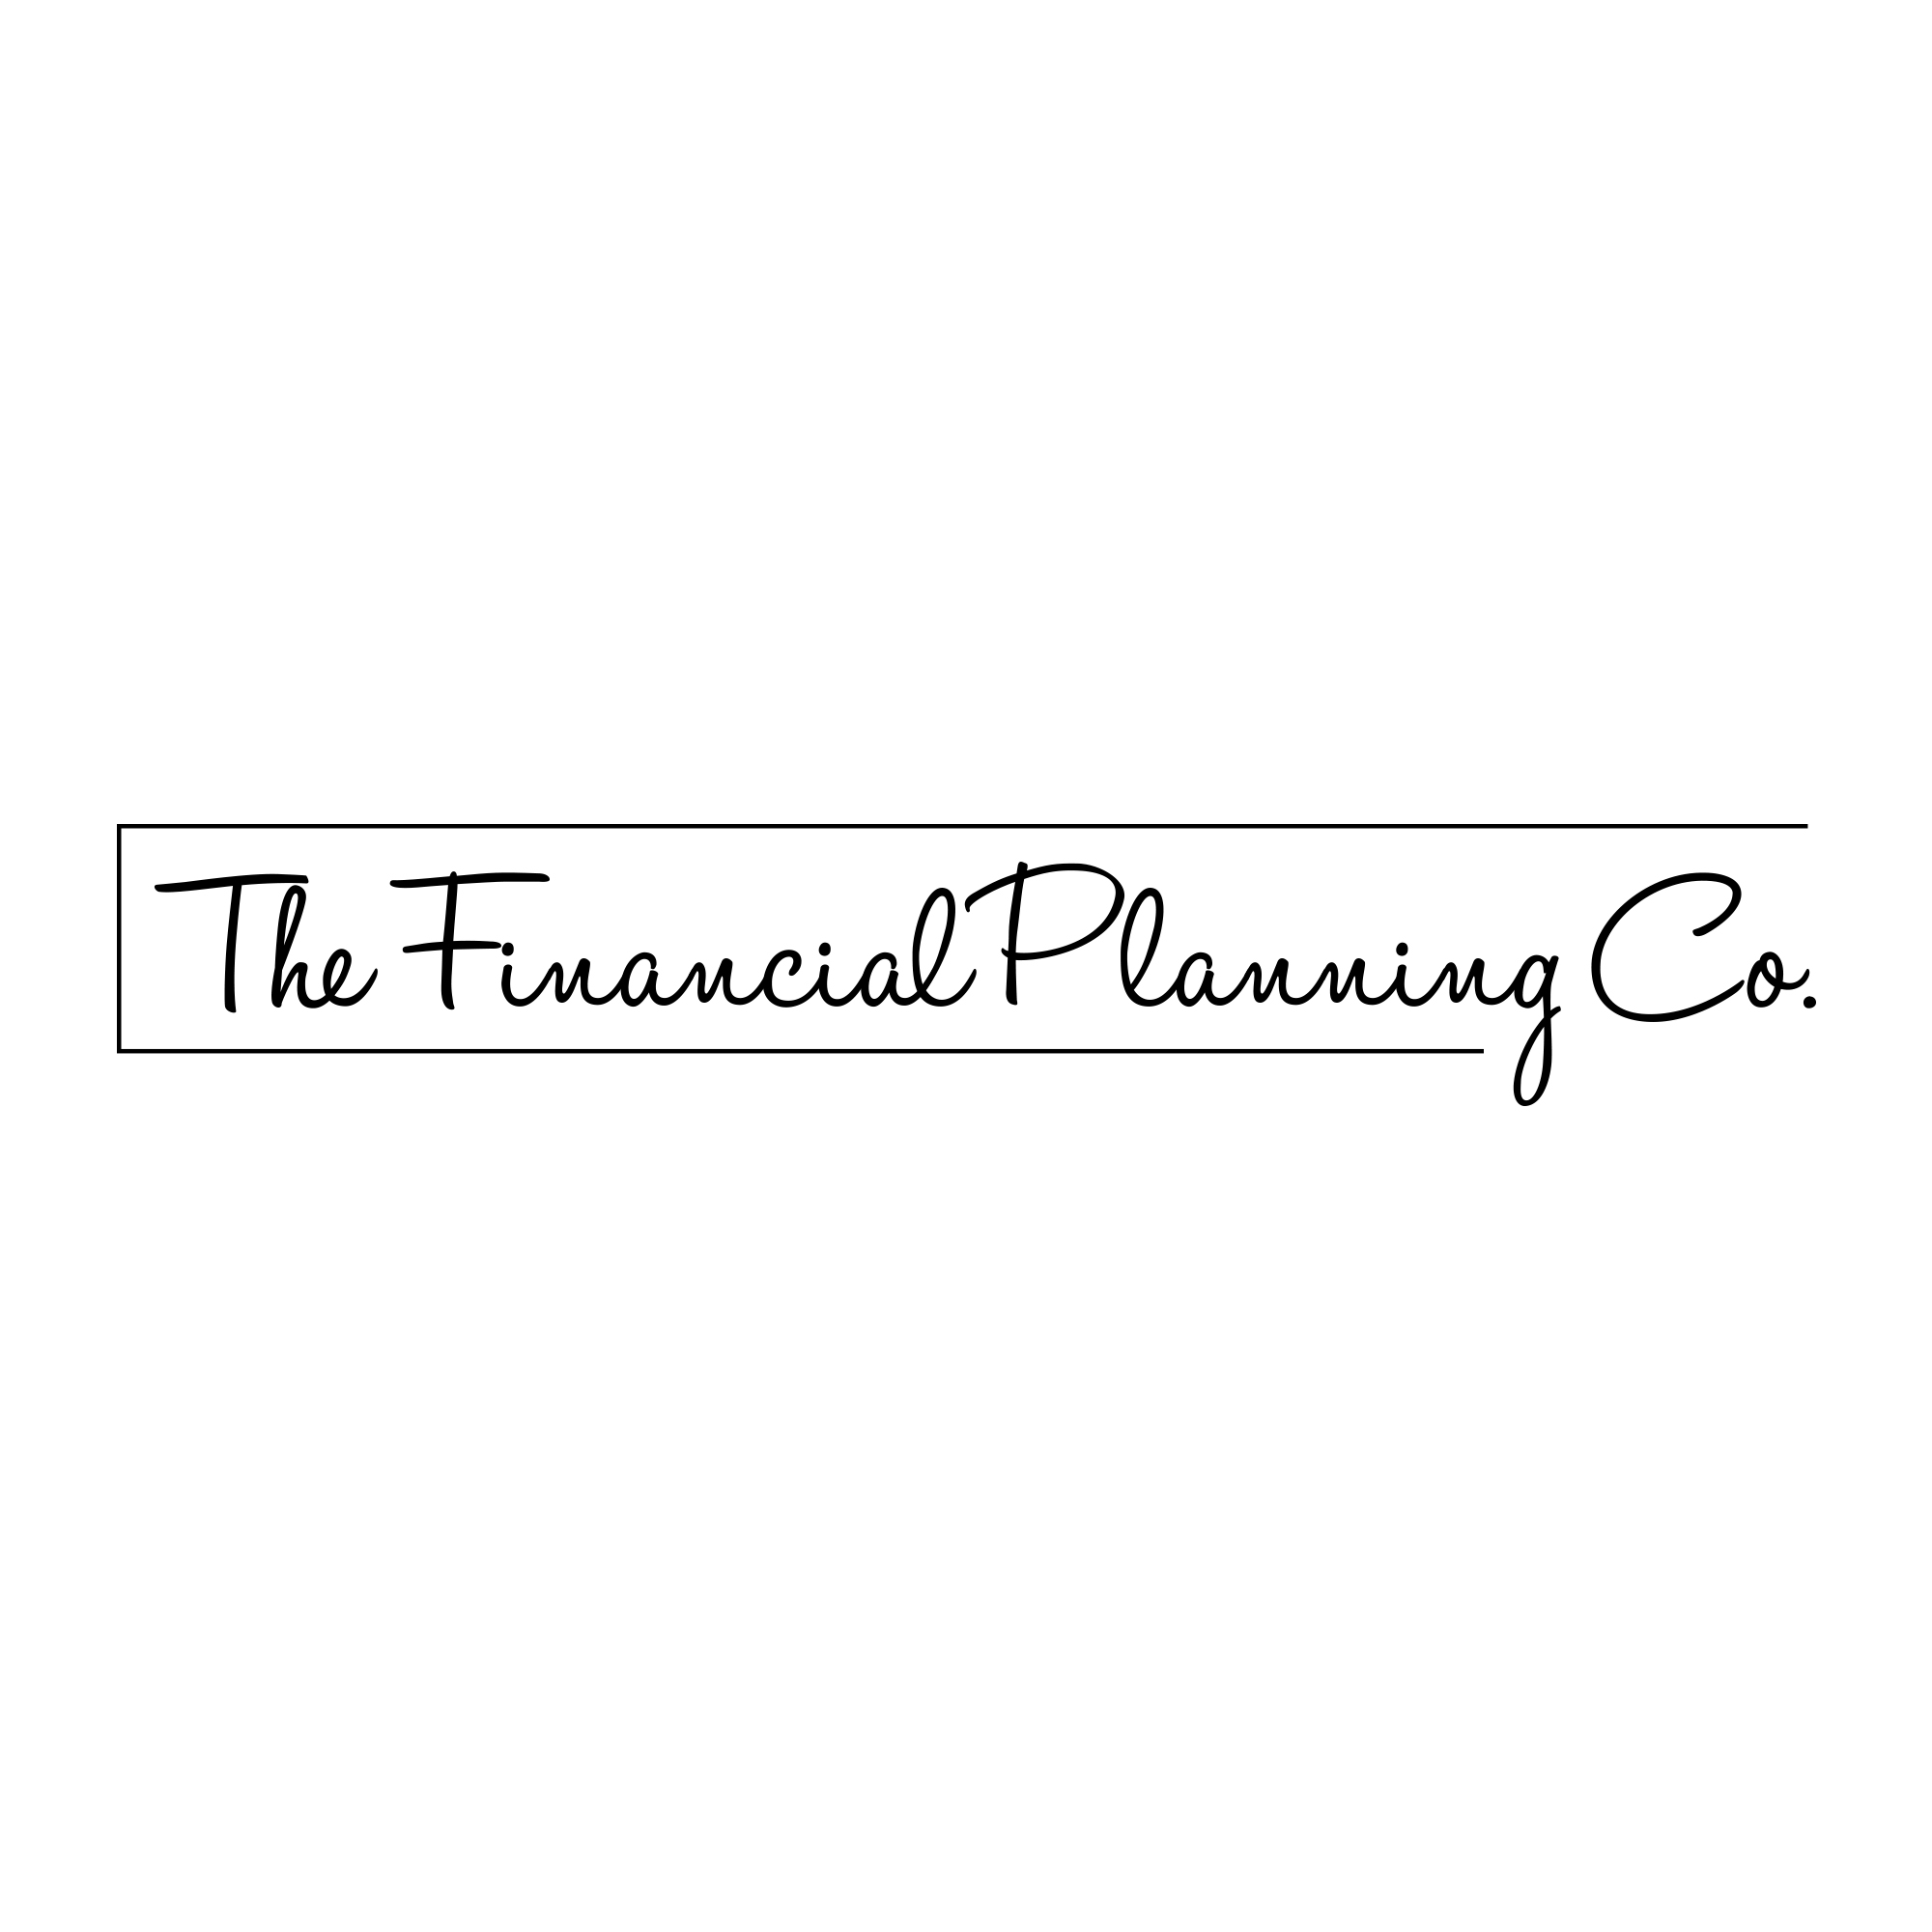 The-Financial-Planning-Co.-logo-A2.jpg